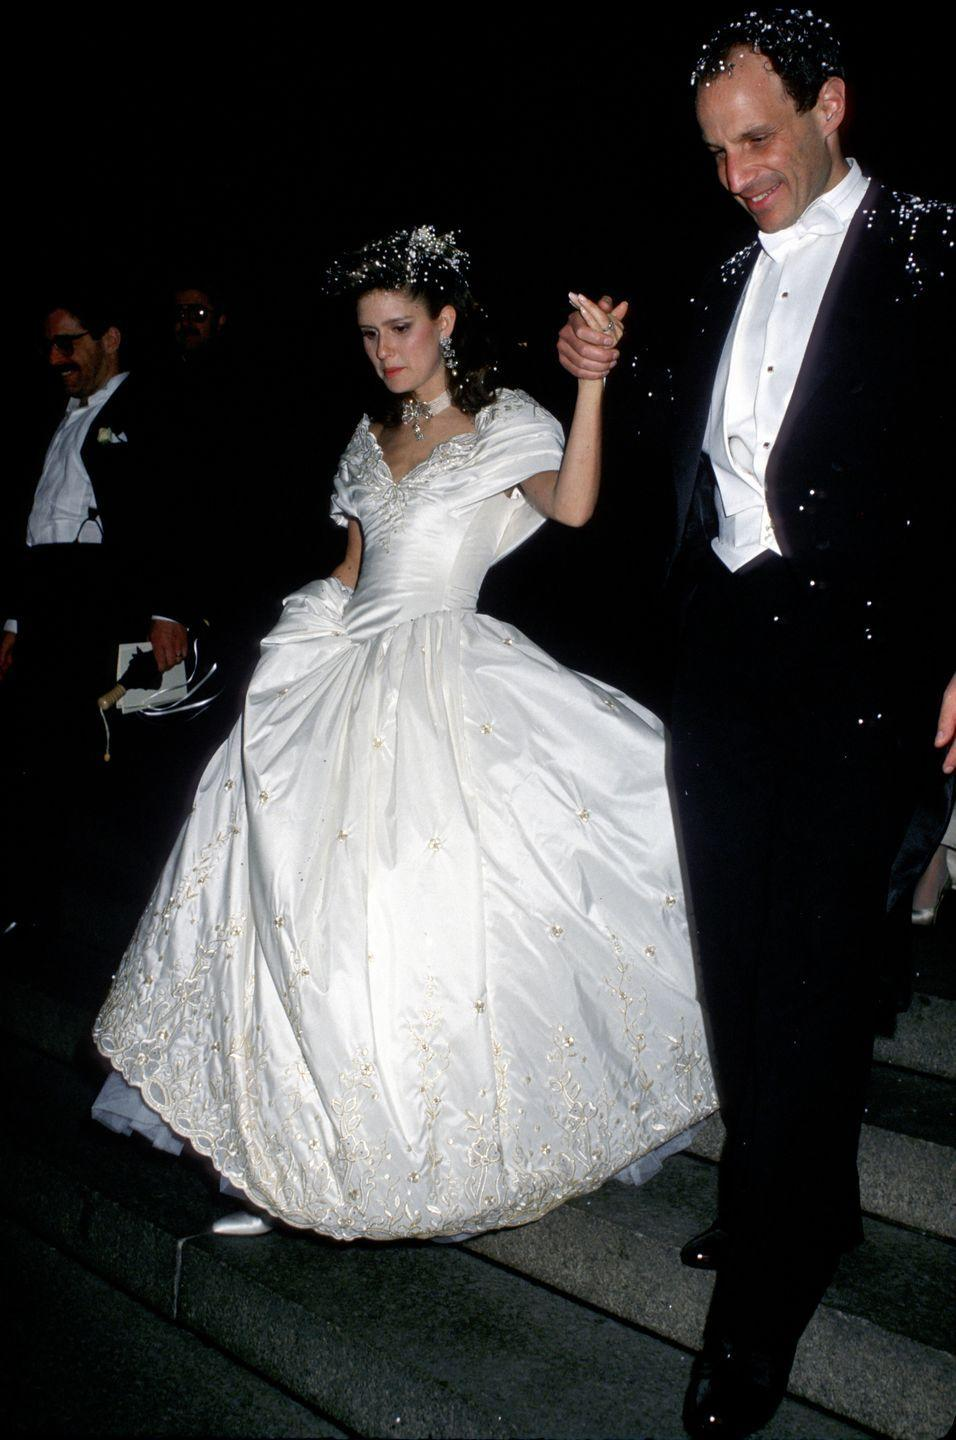 """<p>Jonathan Tisch and Laura Steinberg married in 1988 at the Central Synagogue in NYC. Their wedding made the pages of <a href=""""https://www.nytimes.com/1987/05/03/style/jonathan-tisch-executive-to-marry-laura-steinberg.html"""" rel=""""nofollow noopener"""" target=""""_blank"""" data-ylk=""""slk:The New York Times"""" class=""""link rapid-noclick-resp""""><em>The New York Times</em></a>, obviously, though the couple later divorced. Jonathan's wealth can be traced back to his family's empire of hotels, which now all fall under the Loews Corporation. The American conglomerate has diversified its portfolio to include insurance, oil drilling, and pipeline transport. </p><p>Laura wore an <a href=""""https://www.nytimes.com/1988/04/19/nyregion/candlelight-wedding-joins-2-billionaire-families.html"""" rel=""""nofollow noopener"""" target=""""_blank"""" data-ylk=""""slk:off-white taffeta dress"""" class=""""link rapid-noclick-resp"""">off-white taffeta dress</a> that was delicately embroidered in gold and had a seven-foot train. Her tulle veil was held in place by a diamond and pearl tiara. Meanwhile, her matron of honor and bridesmaids all wore dresses by Arnold Scaasi. As reported by <em>The New York Times,</em> """"The families declined a request by <em>Life </em>magazine to document what was being called the wedding of the 80s."""" More than 500 guests attended the wedding, including the likes of Barbara Walters and Helen Gurley Brown. </p>"""